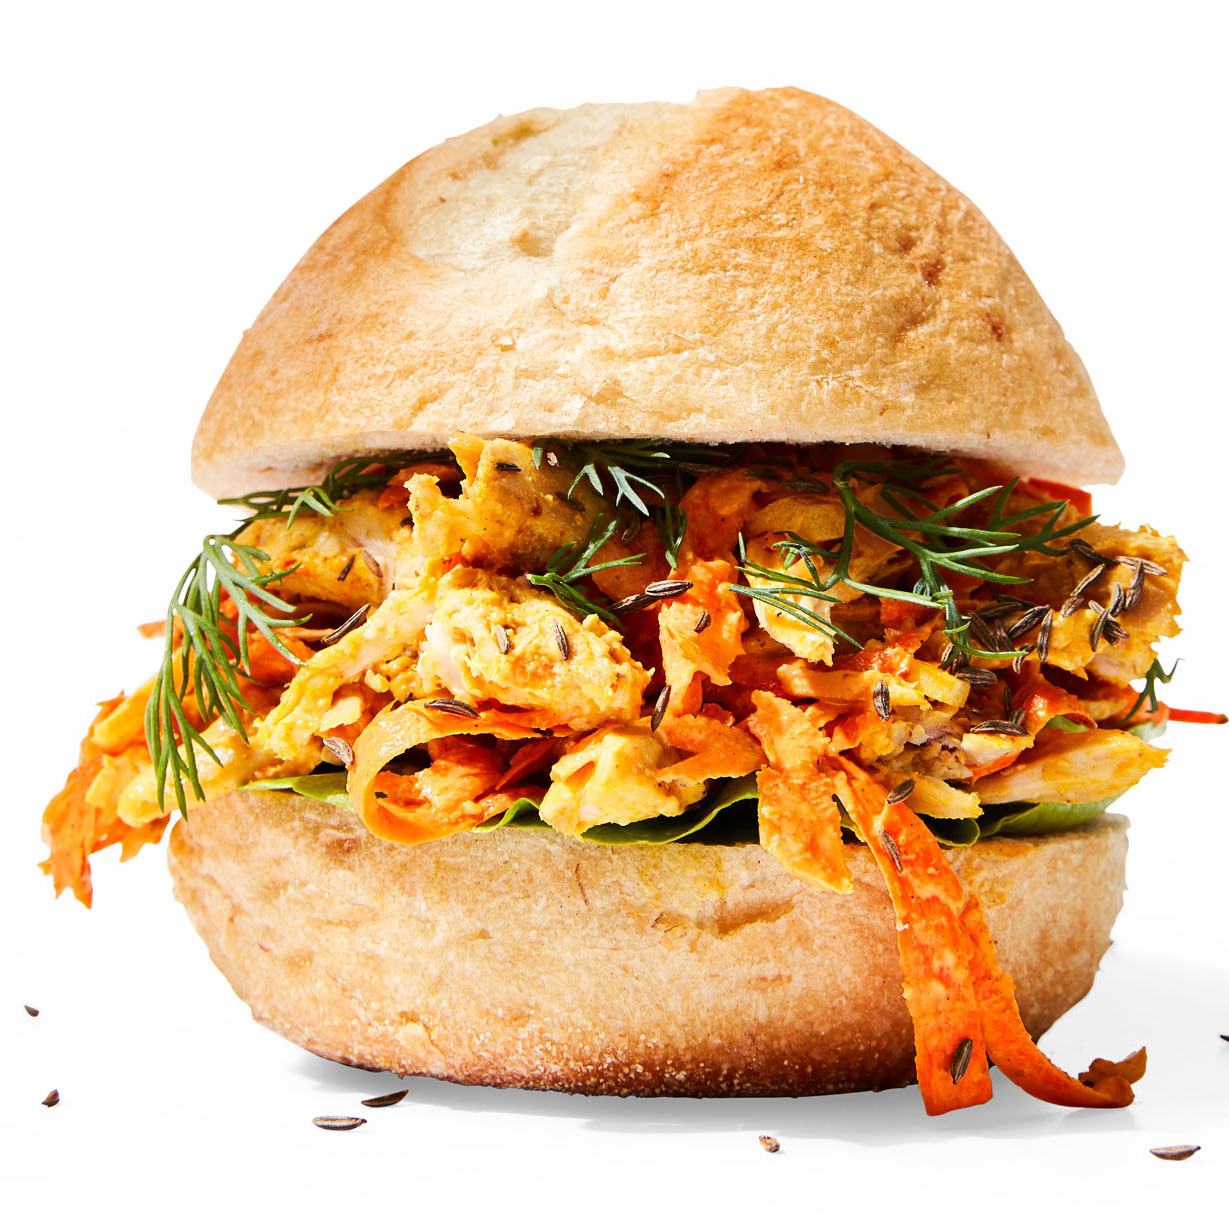 Curried Chicken & Carrot Salad Sandwiches